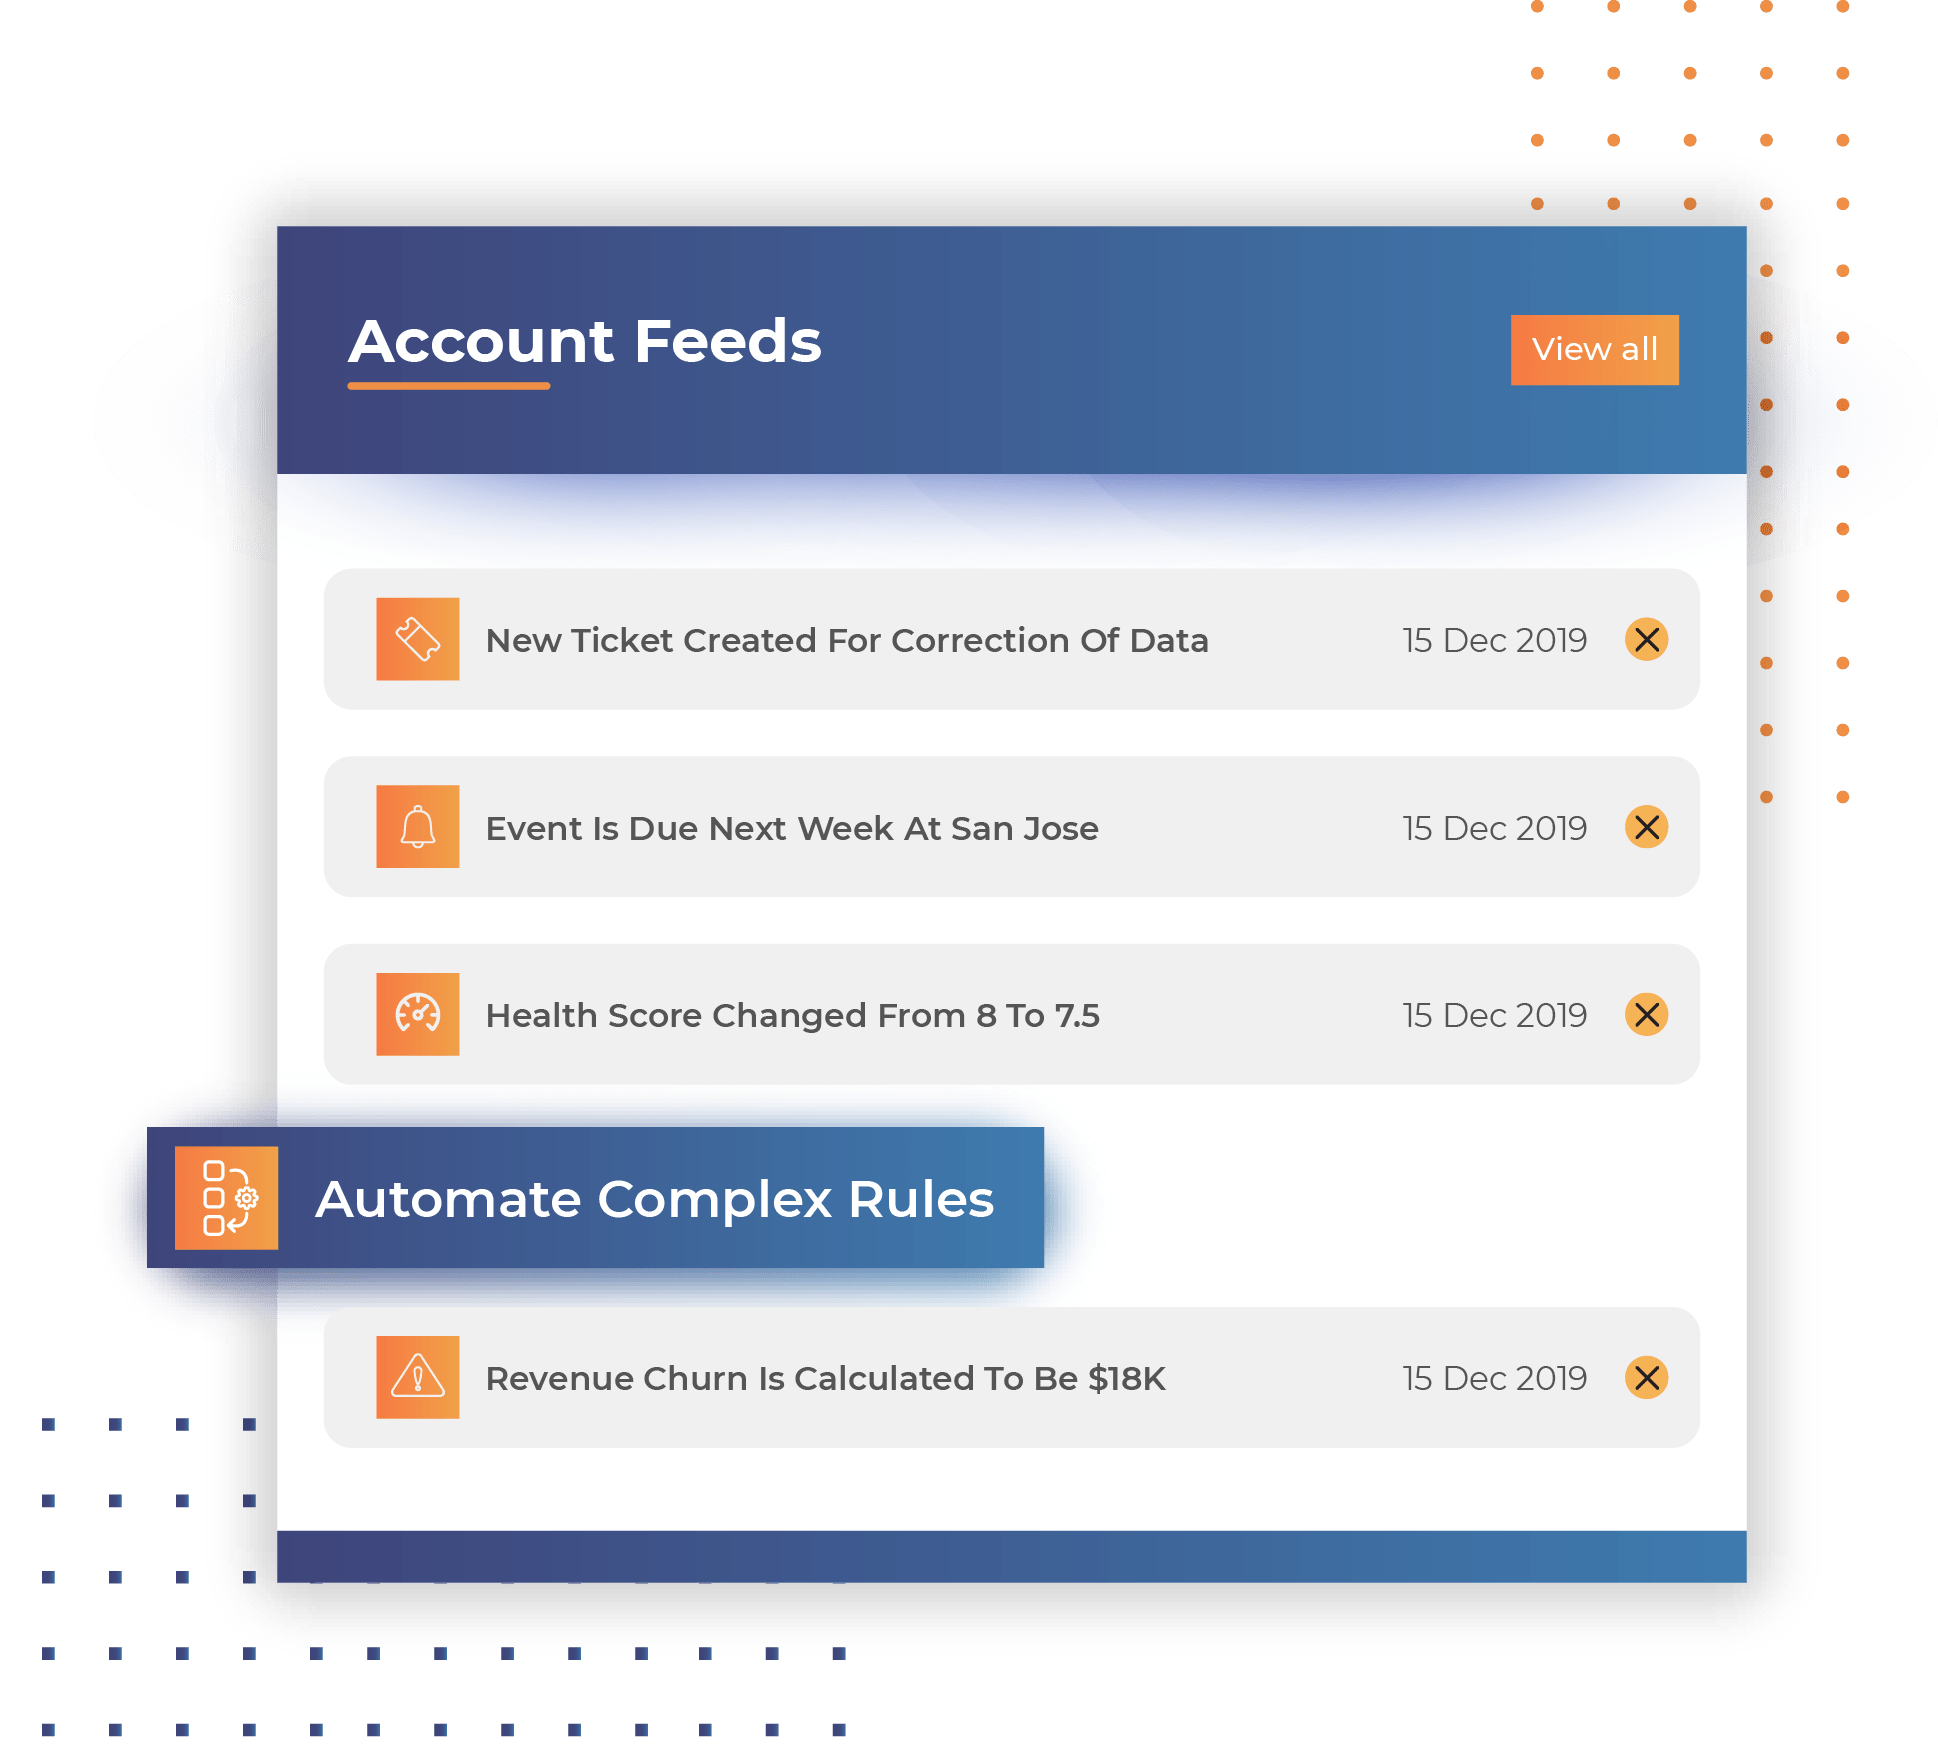 Automated account feed